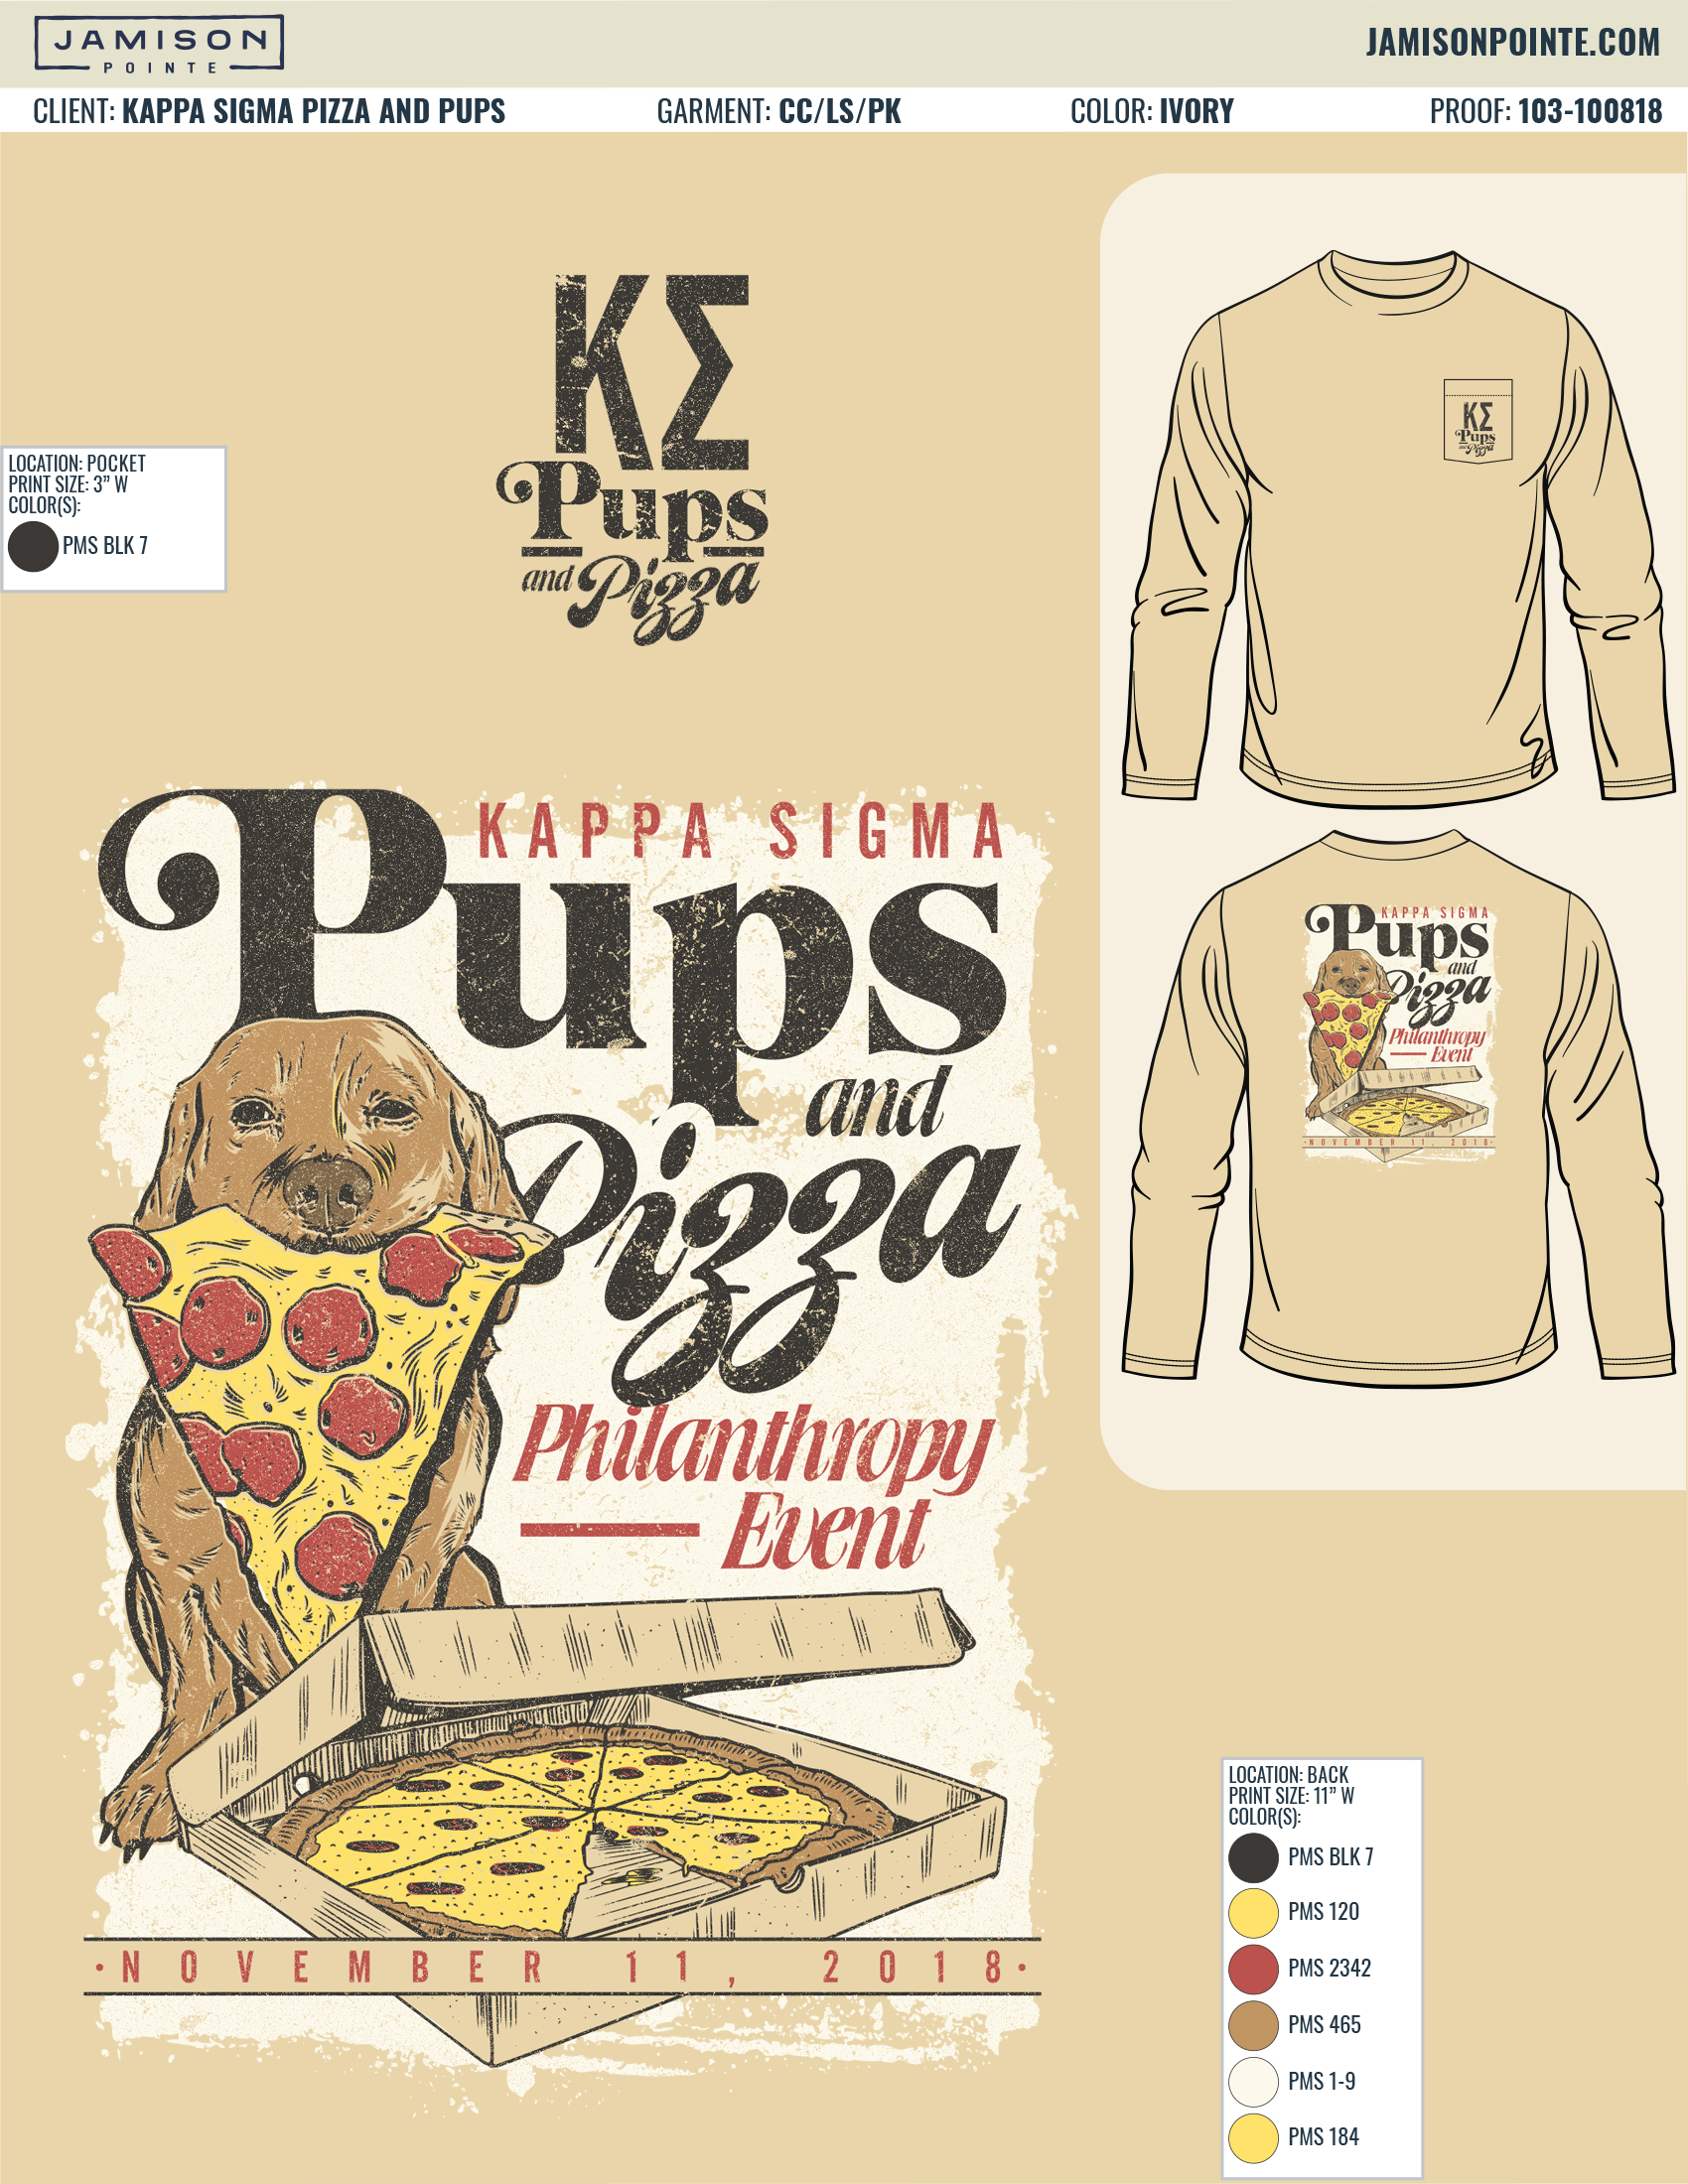 103-100818 Kappa Sigma Pizza and Pups.jpg